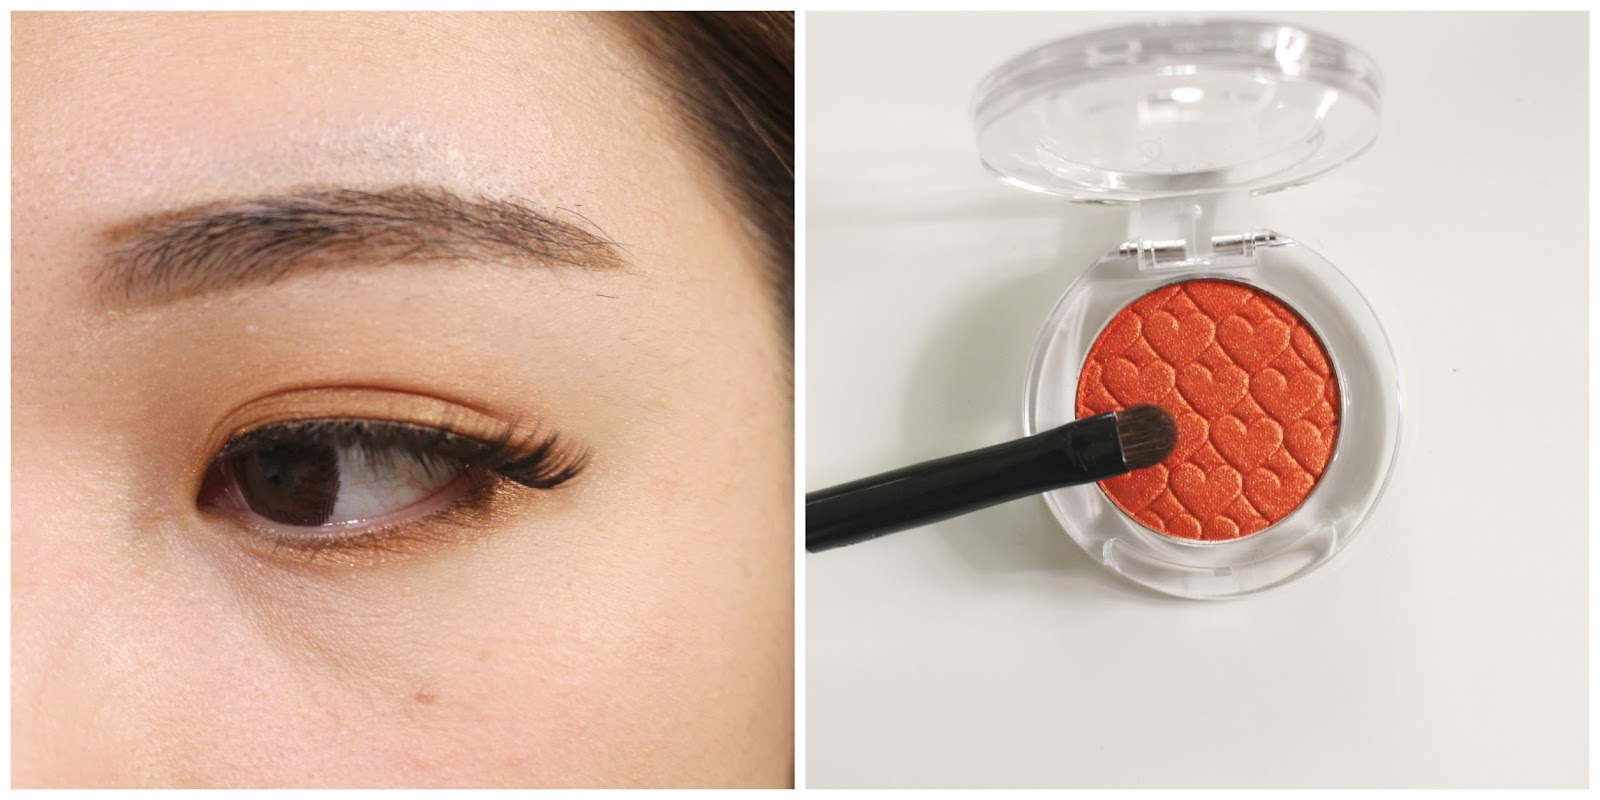 Stayoung etude house look at my eyes review 3 mid half eyelid lower lid or205 baditri Image collections